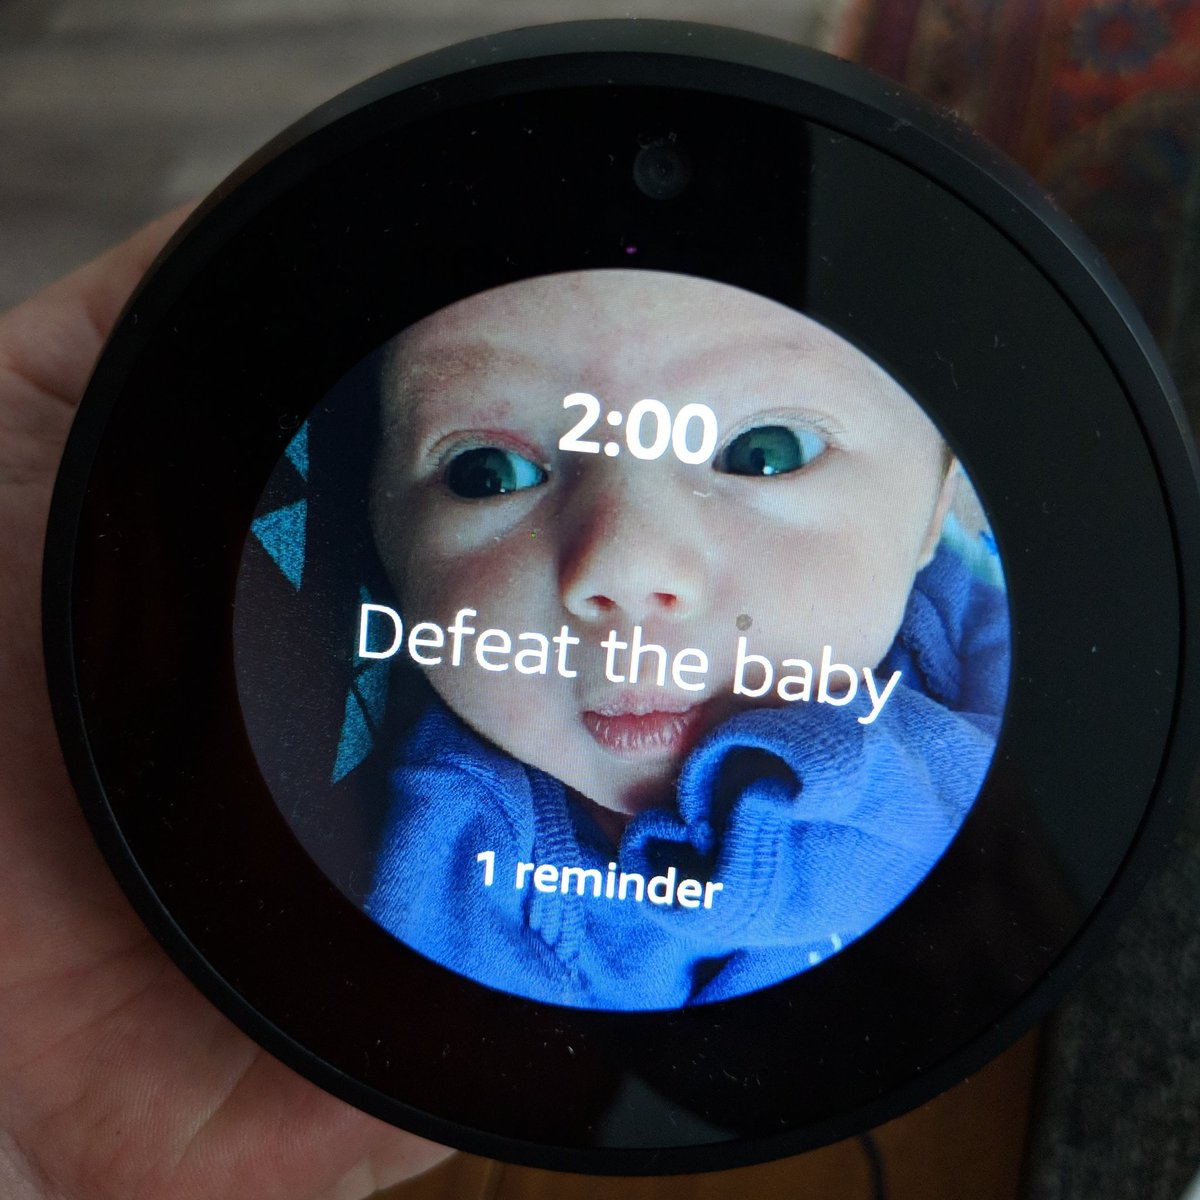 RT @yipe: Alexa: remind me to feed the baby https://t.co/p3sEUcTgYa